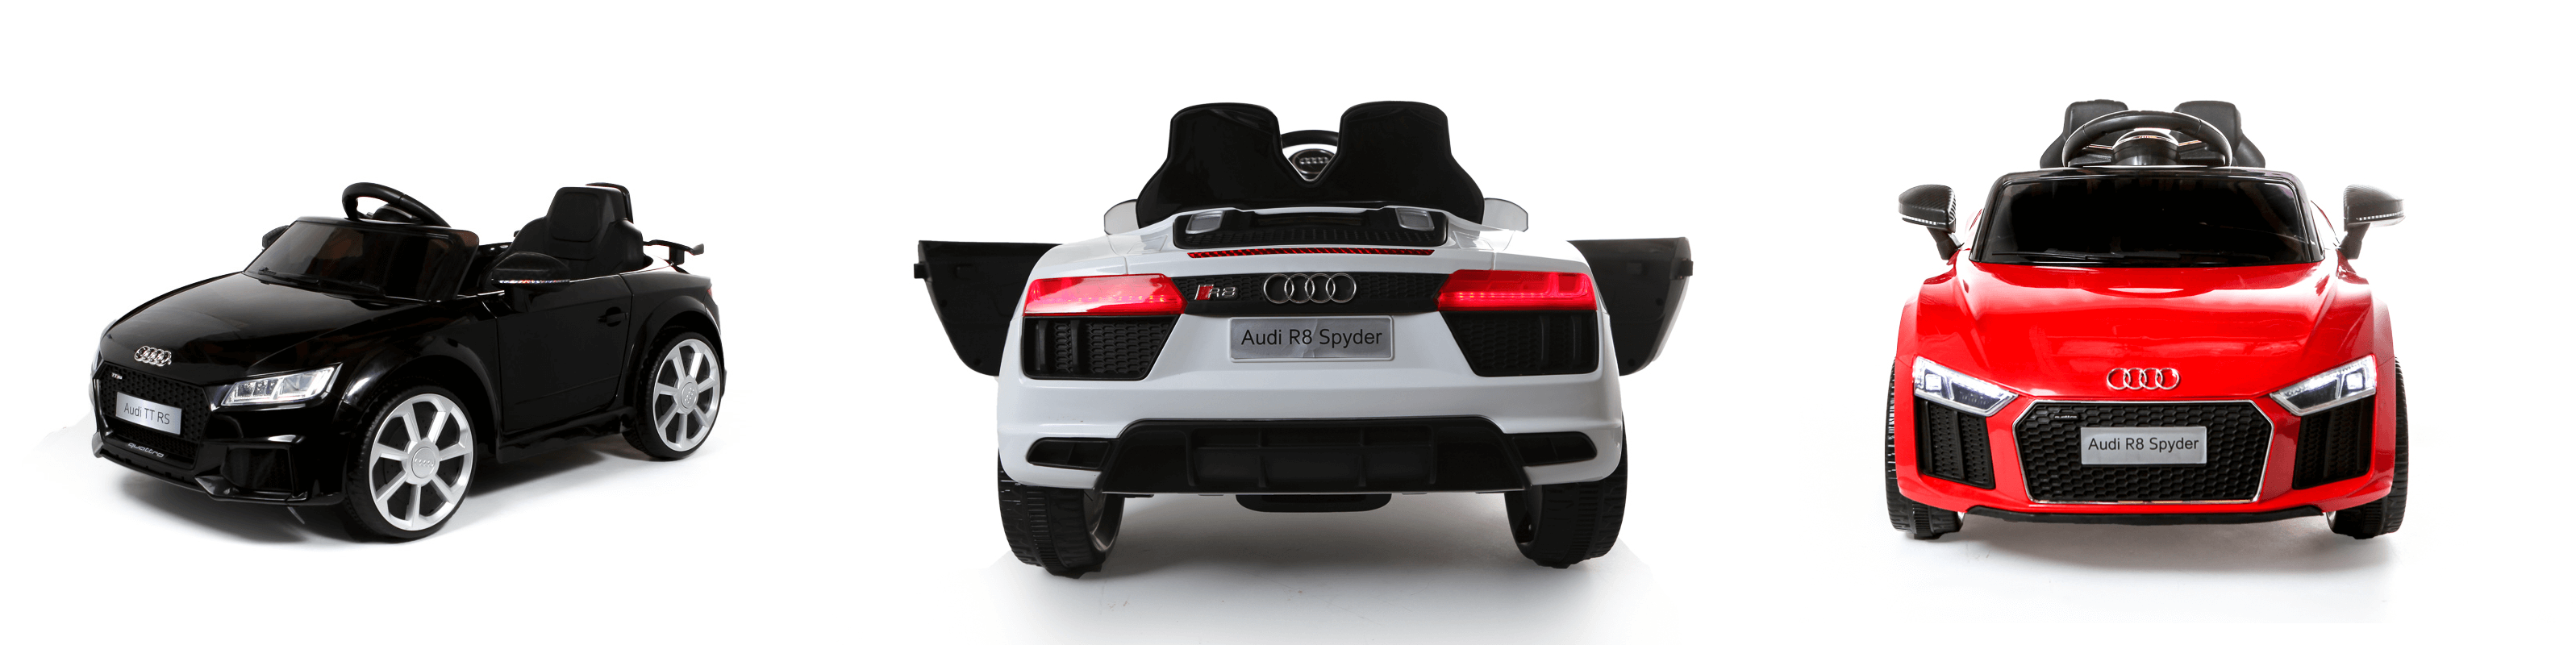 Audi Ride on Cars